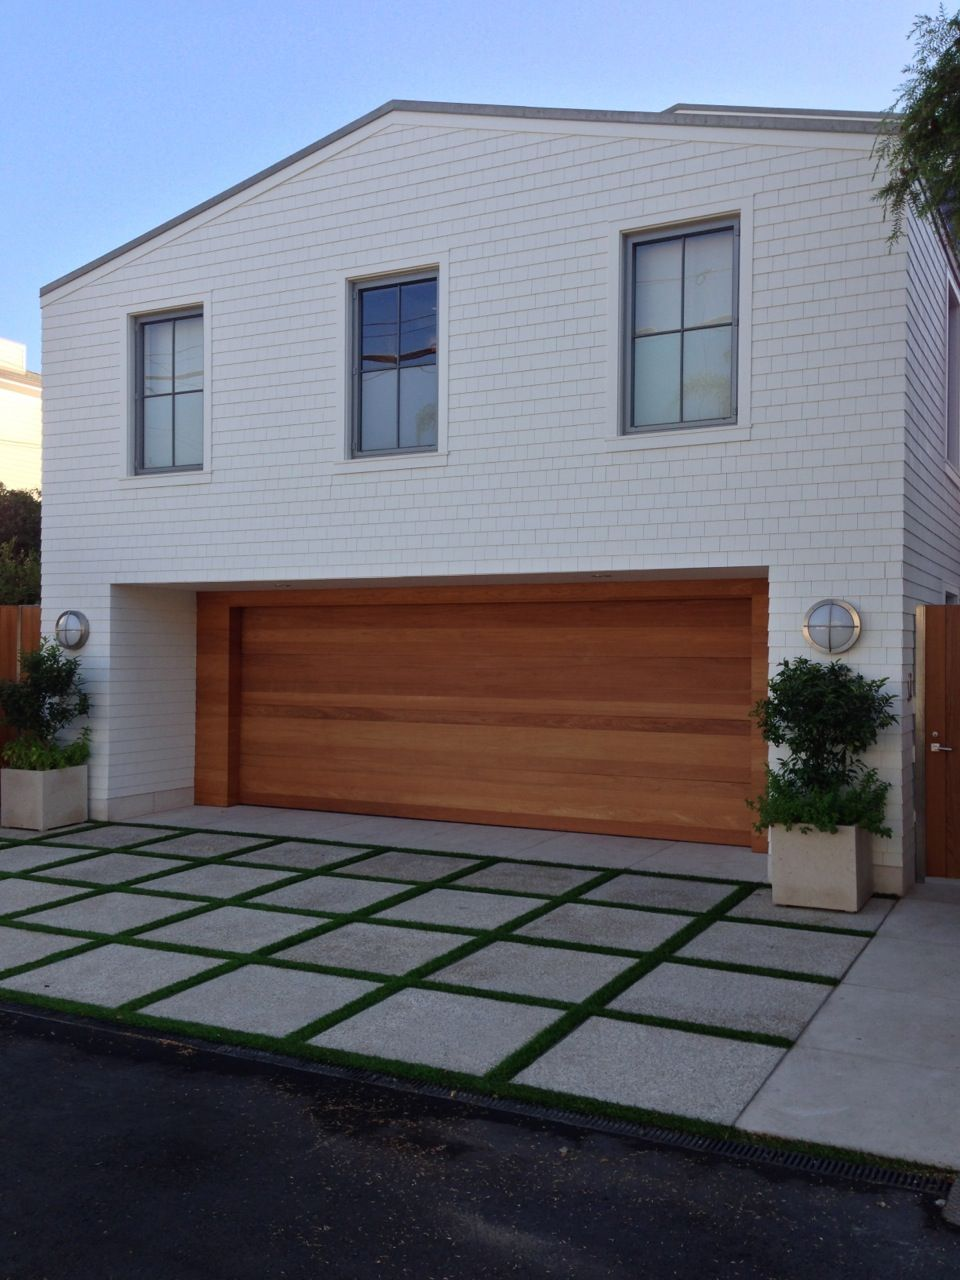 modern white garage door. love the paver driveway, wood garage door and clean lines of house. modern white n